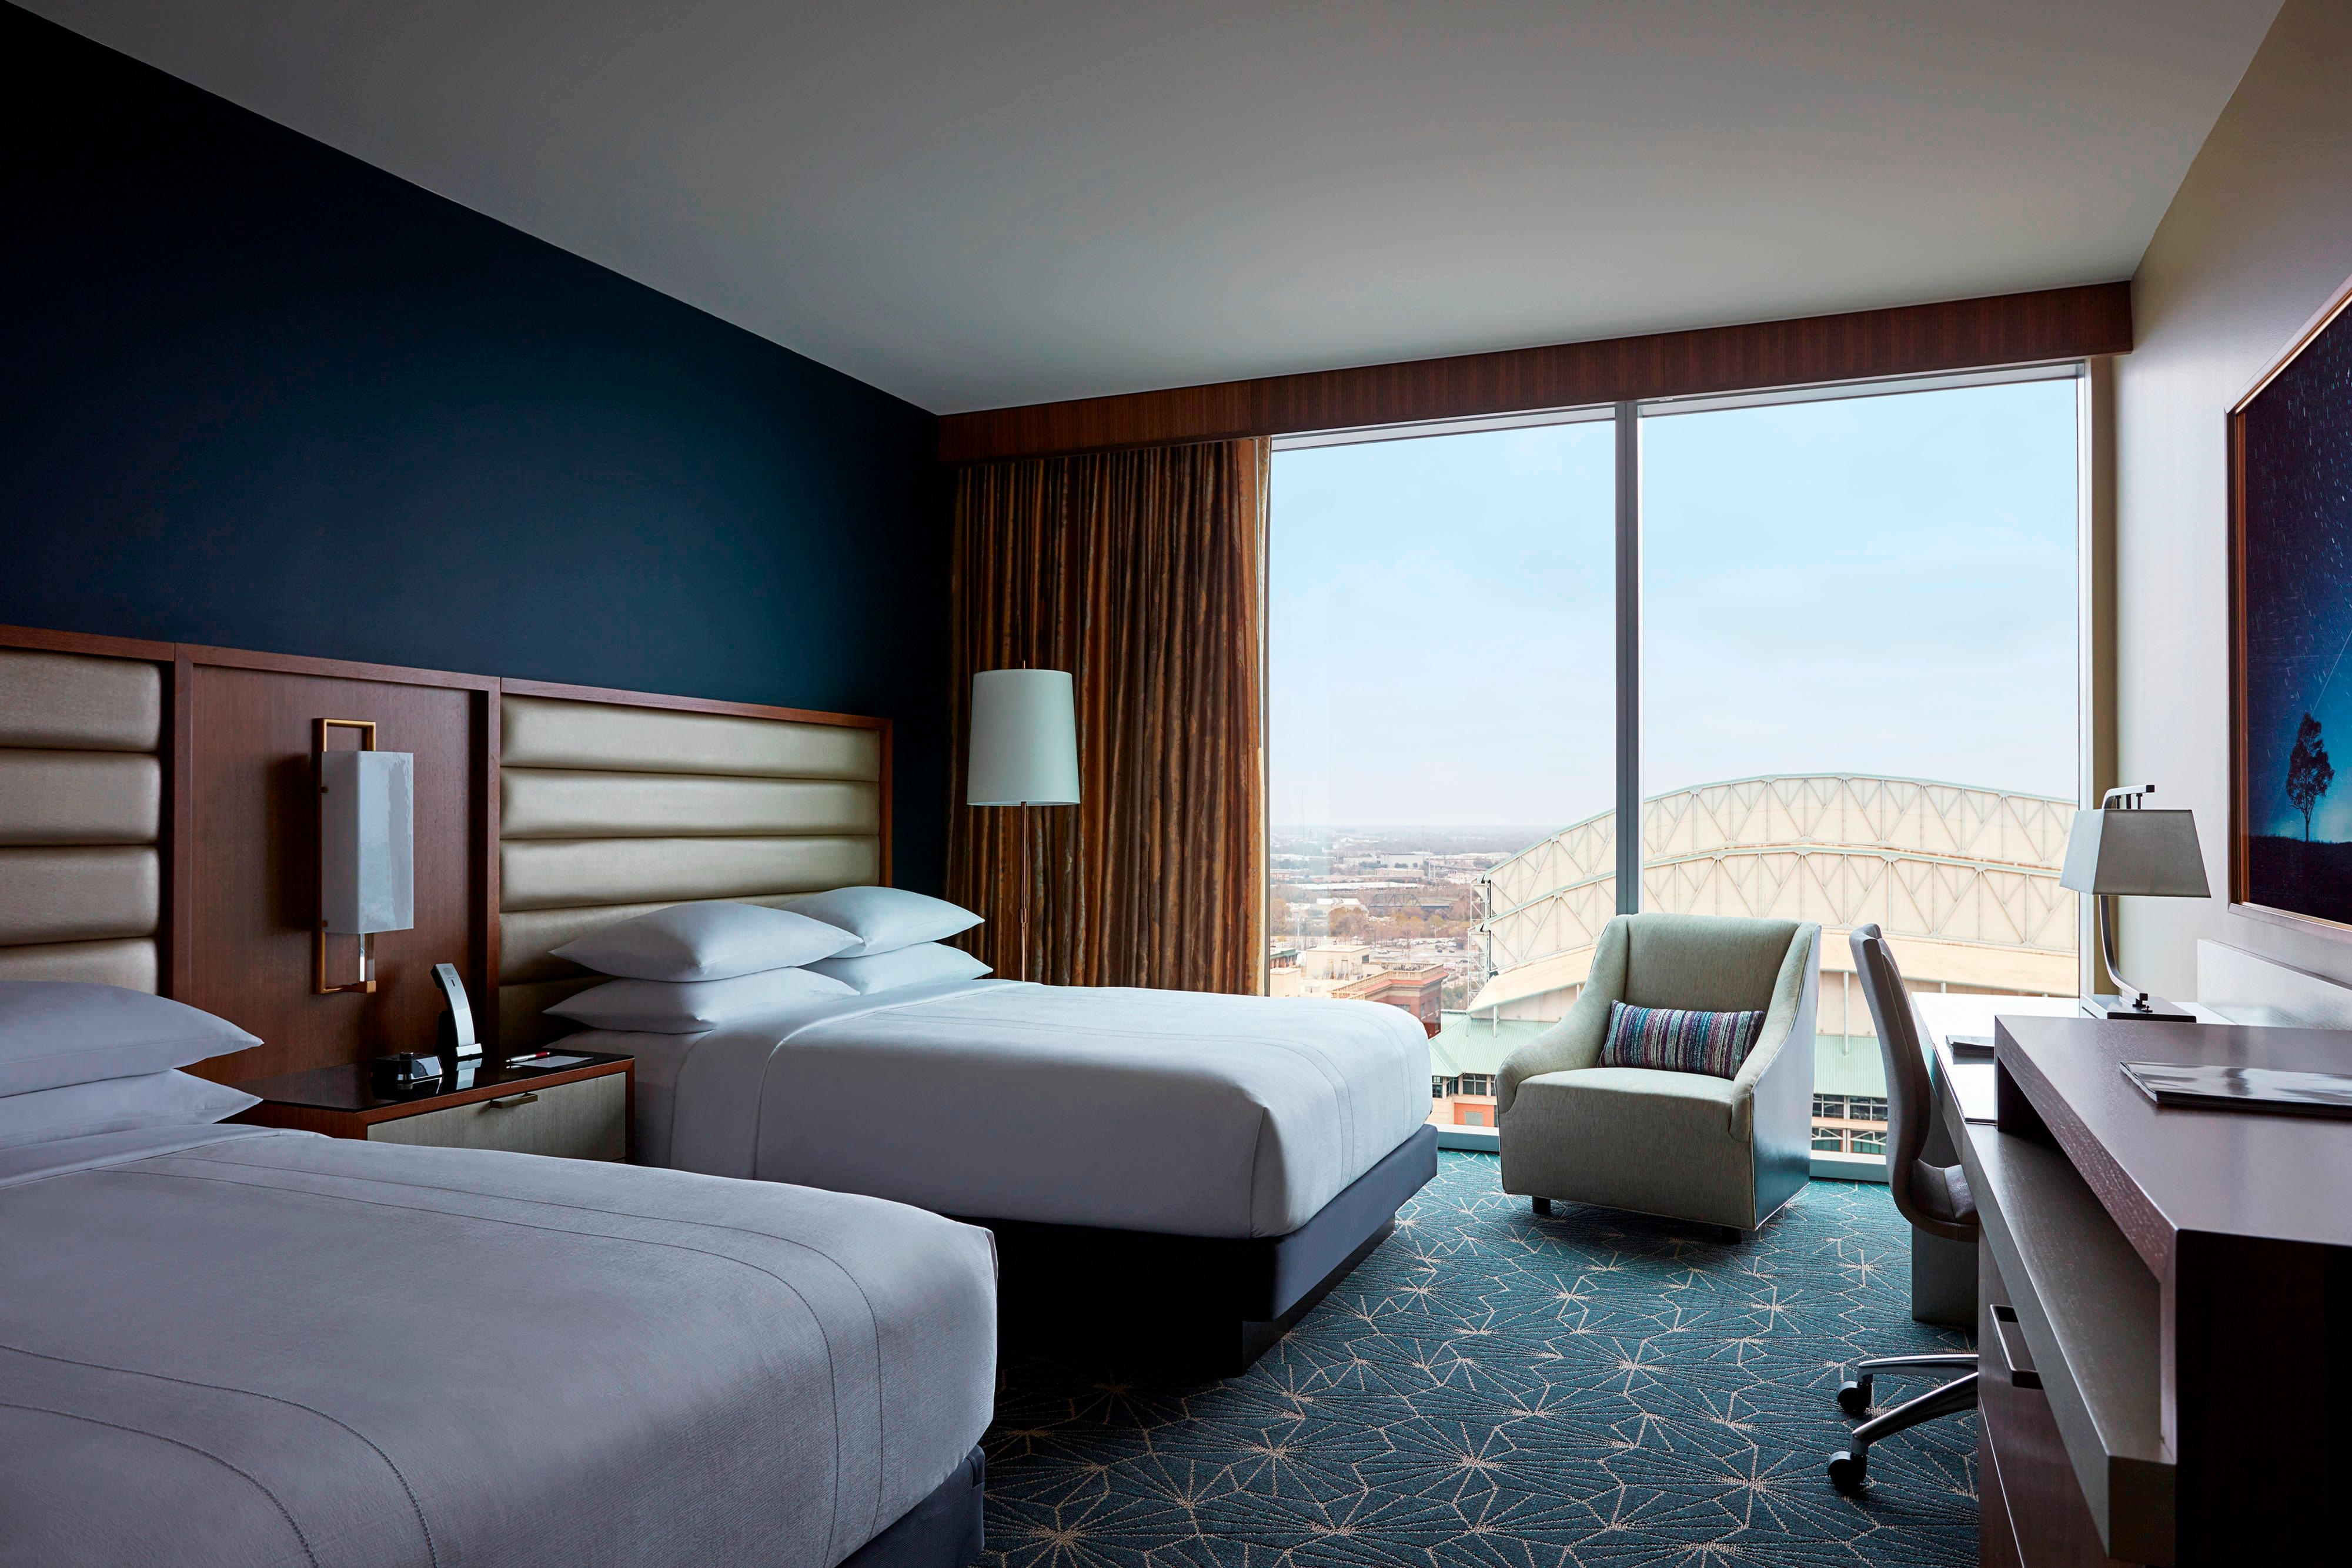 Queen/Queen Guest Room - Minute Maid Park View